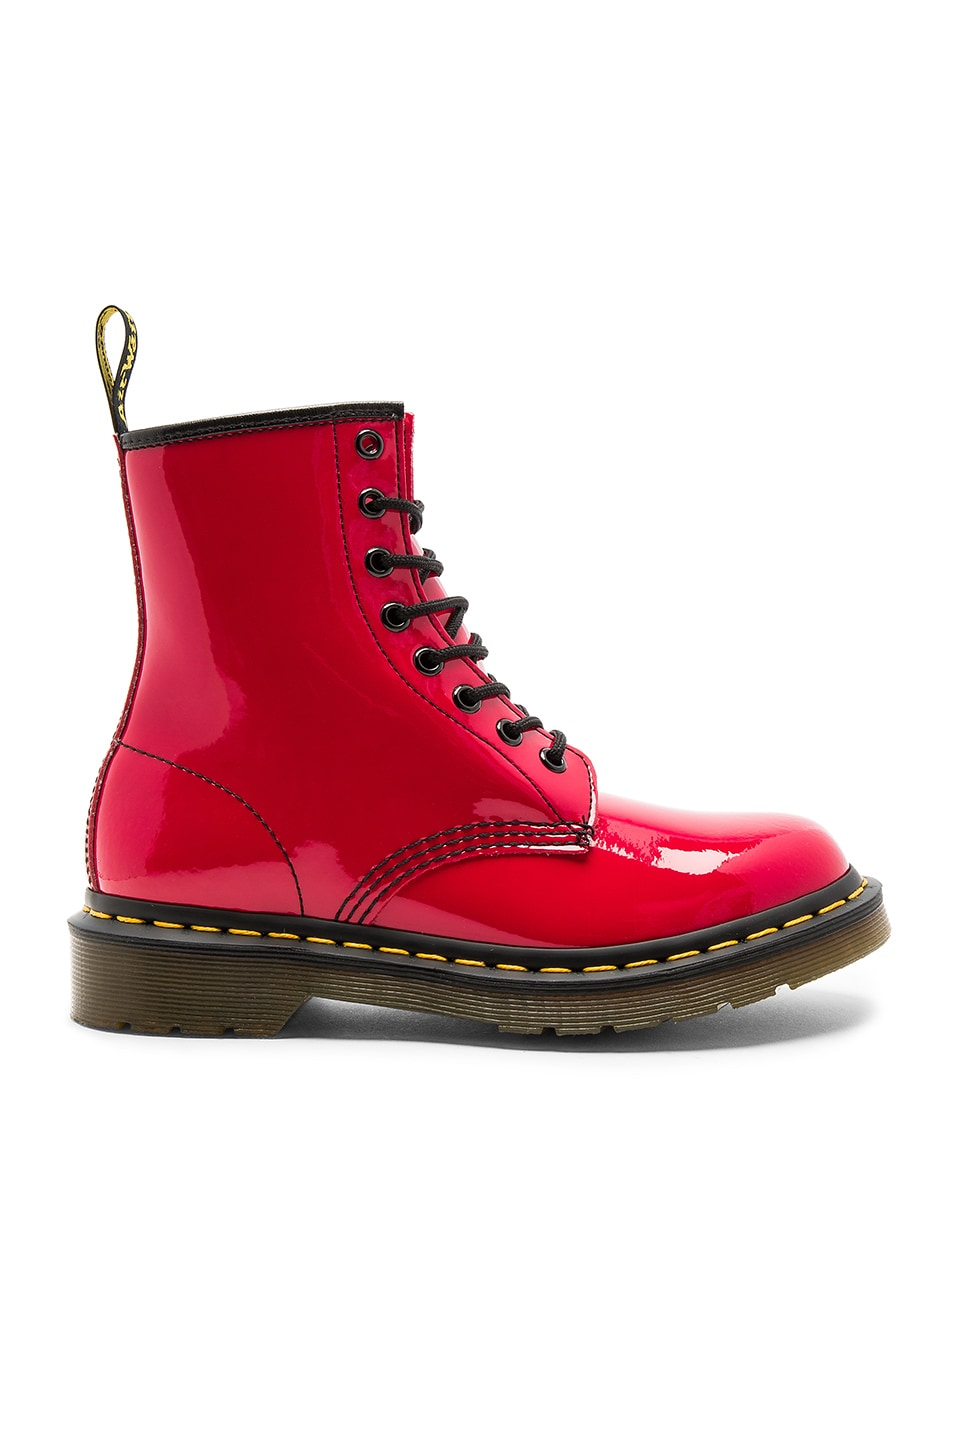 1460 3 Eye Boots by Dr. Martens